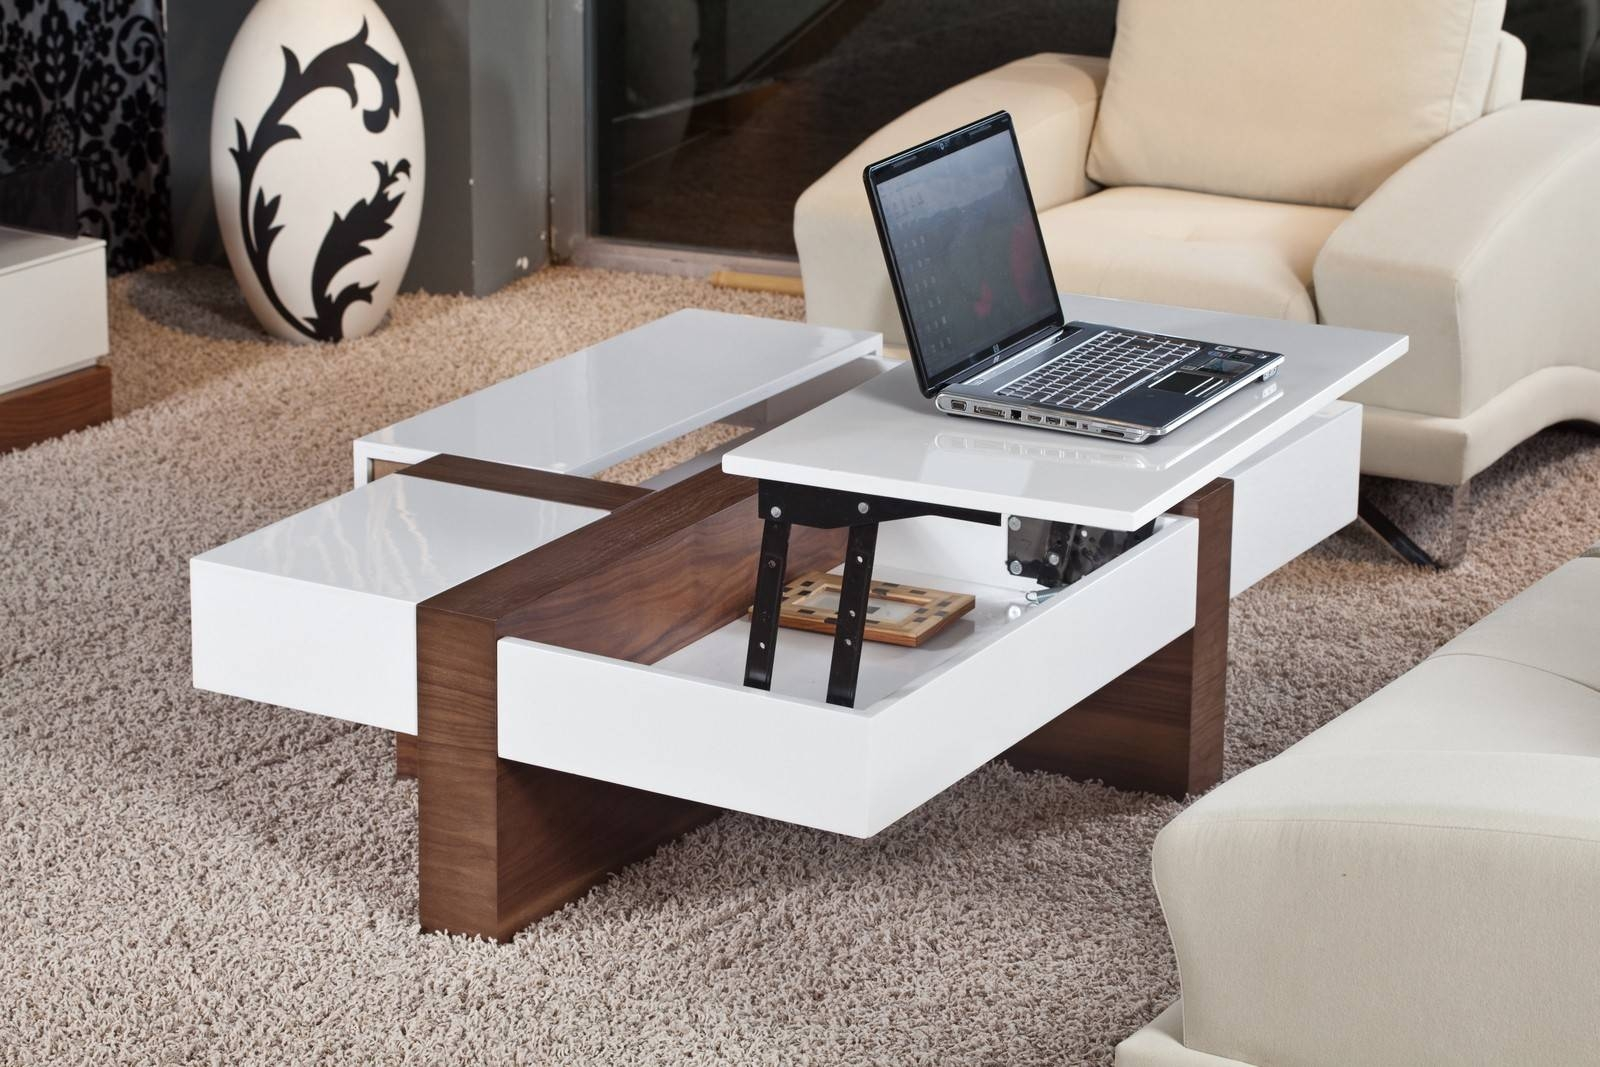 Coffee Table: Popular Modern Lift Top Coffee Table Designs Lift in Glass Lift Top Coffee Tables (Image 3 of 30)